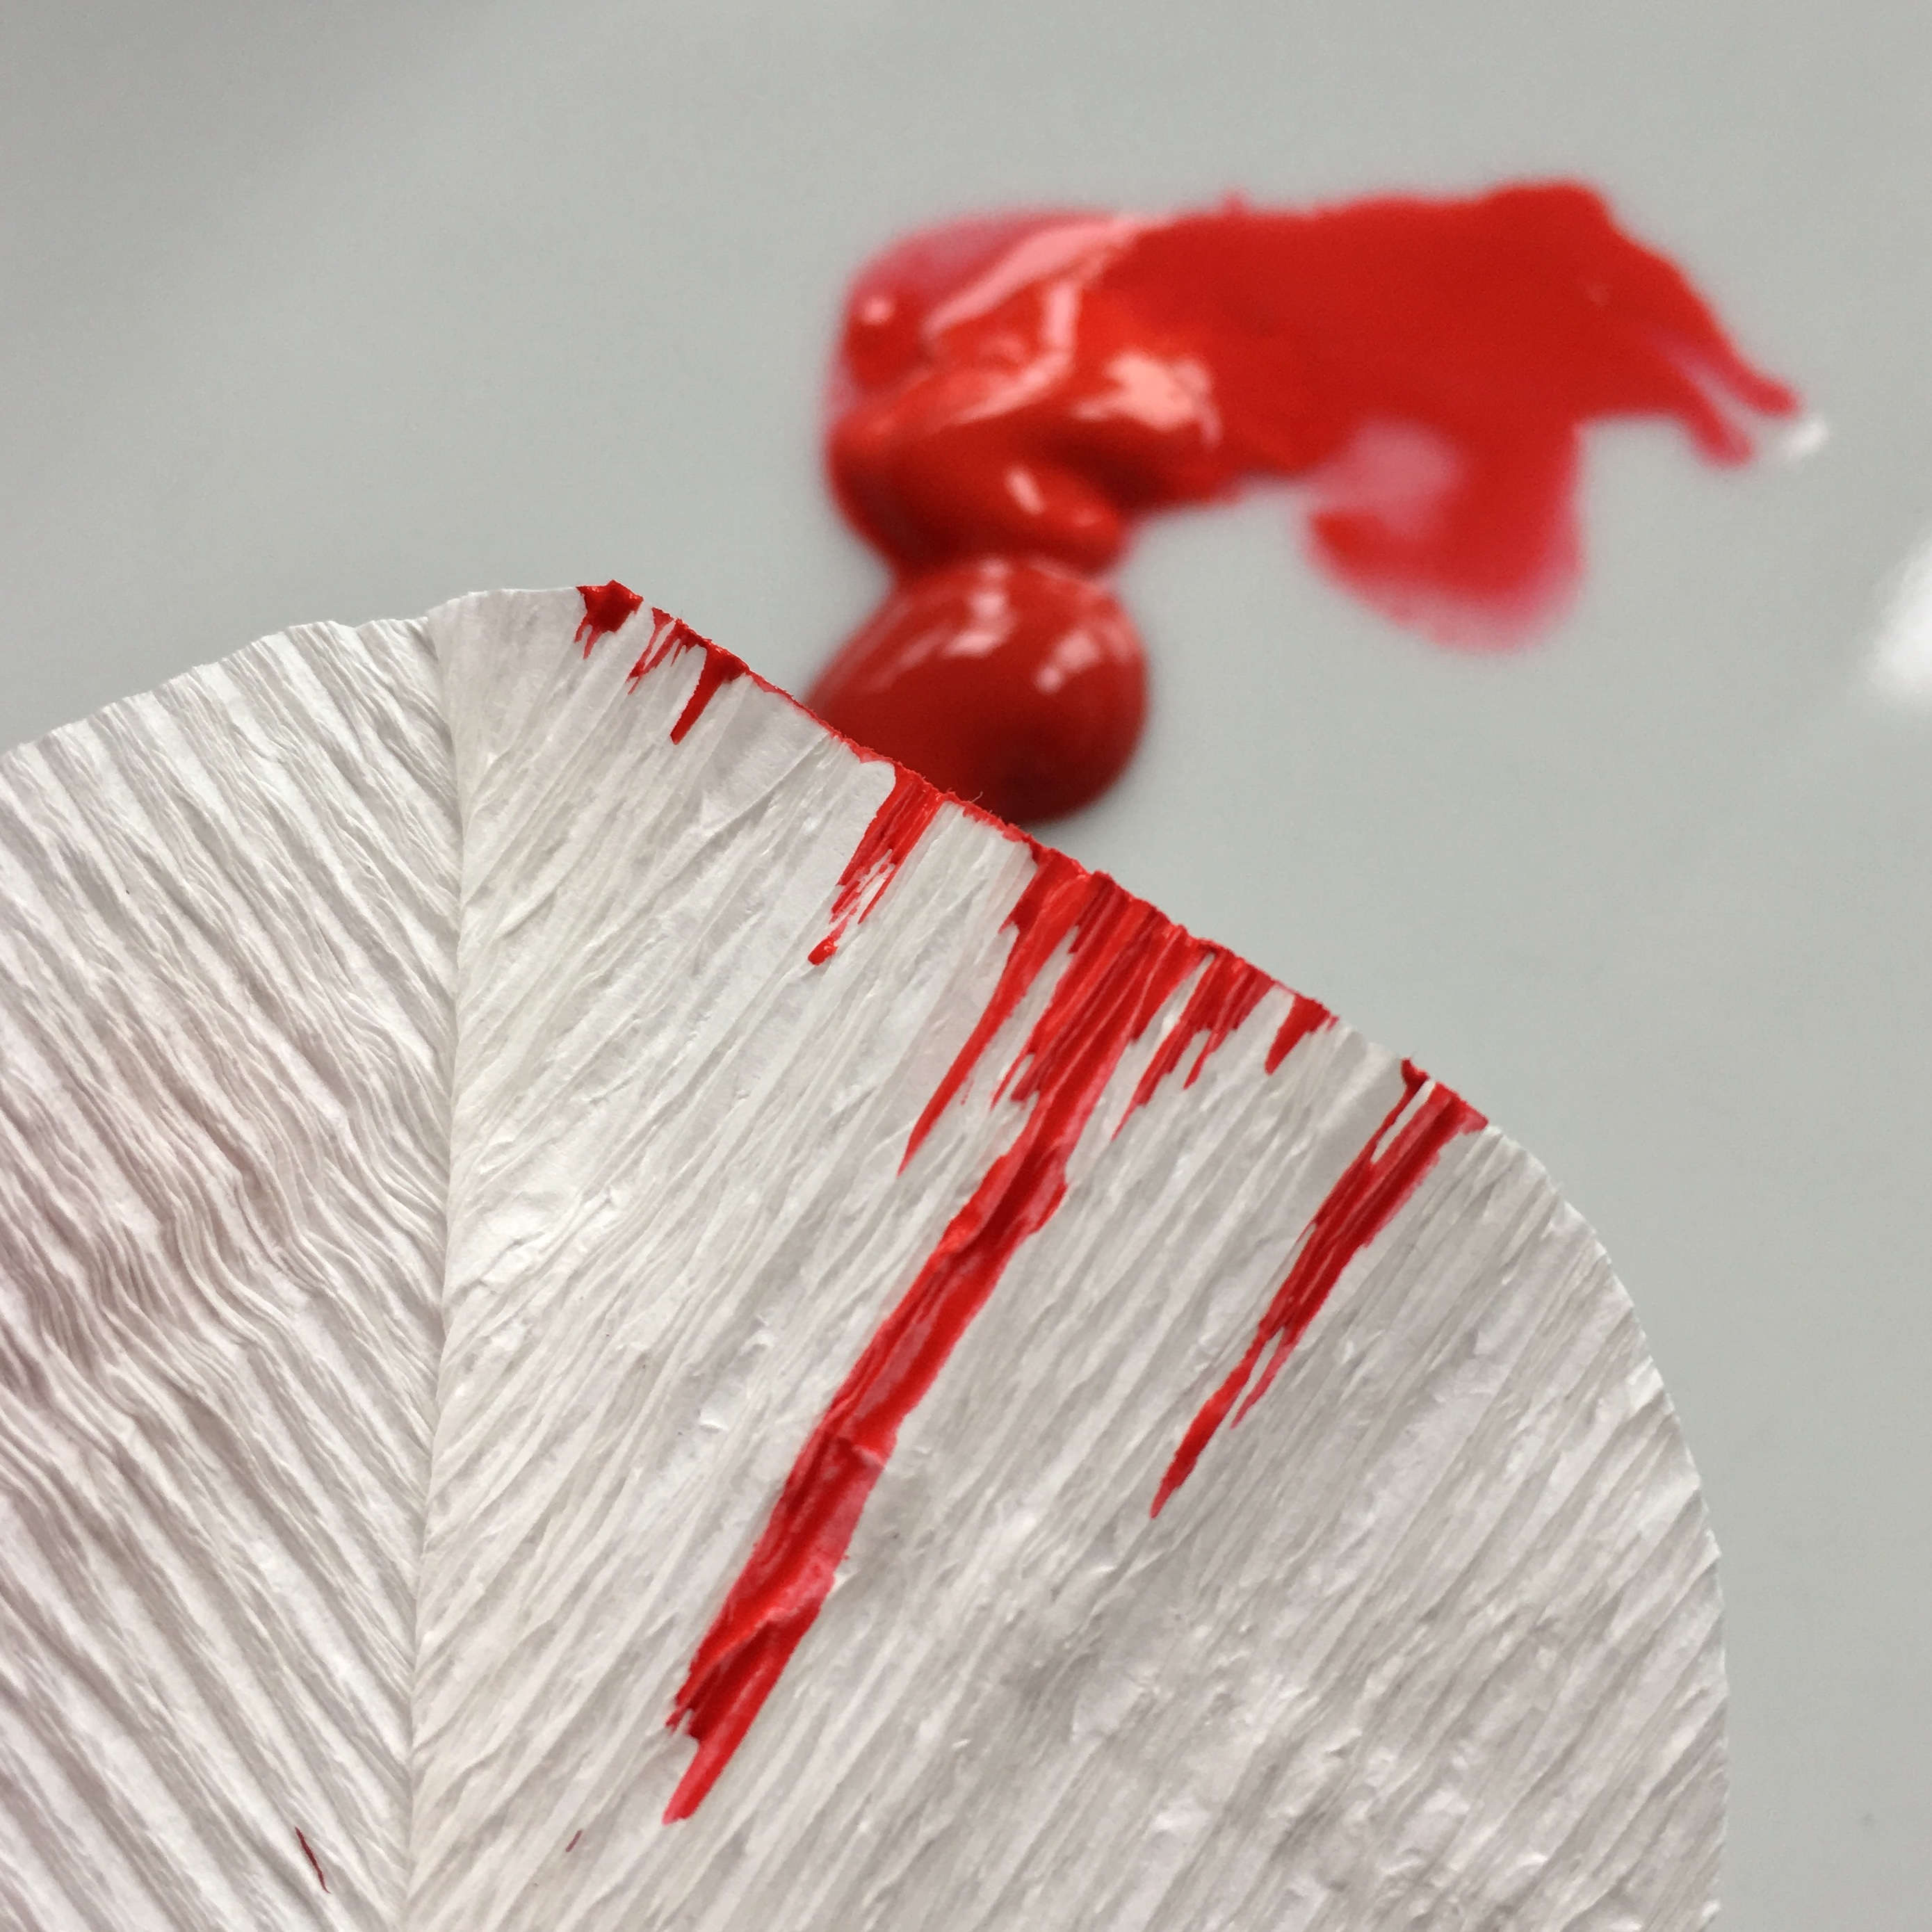 painting red lines in the white tulip petal